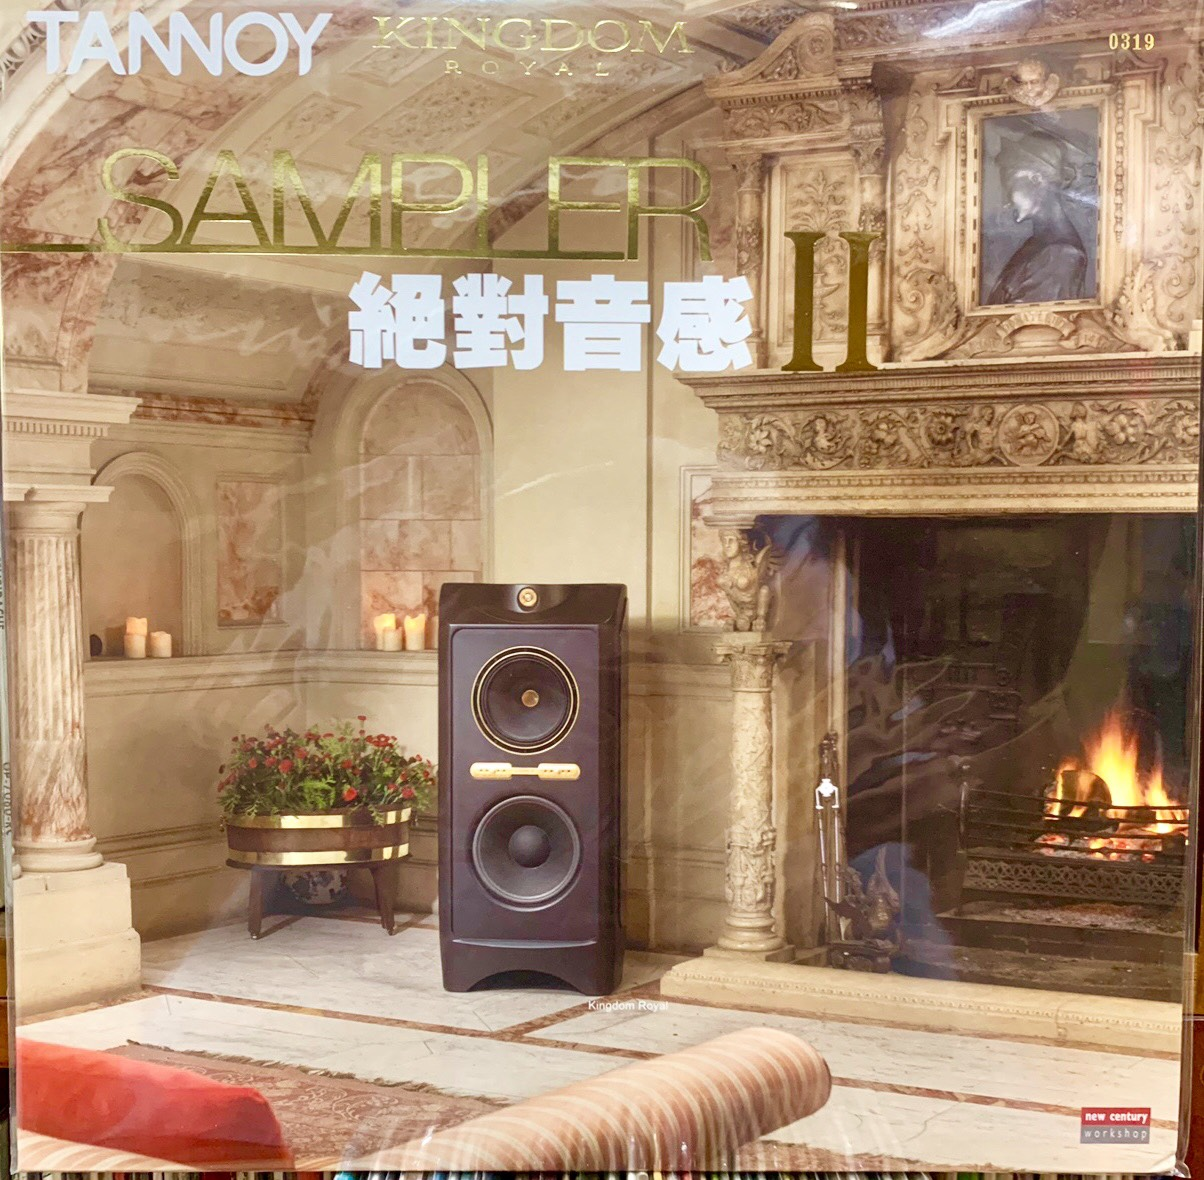 dia-than-lp-tannoy-sampler-2